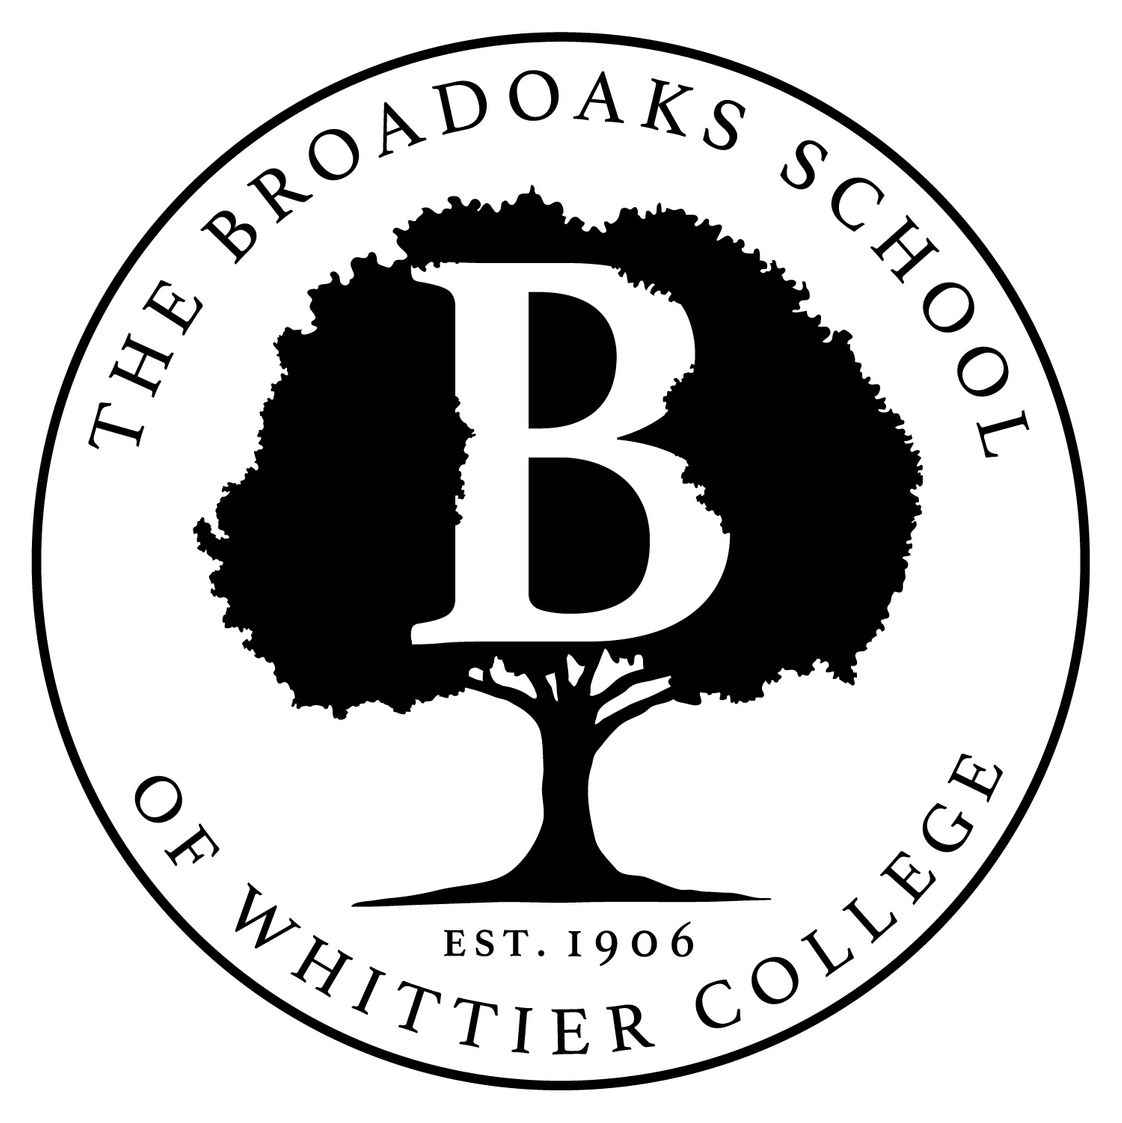 Broadoaks School Of Whittier College Photo #1